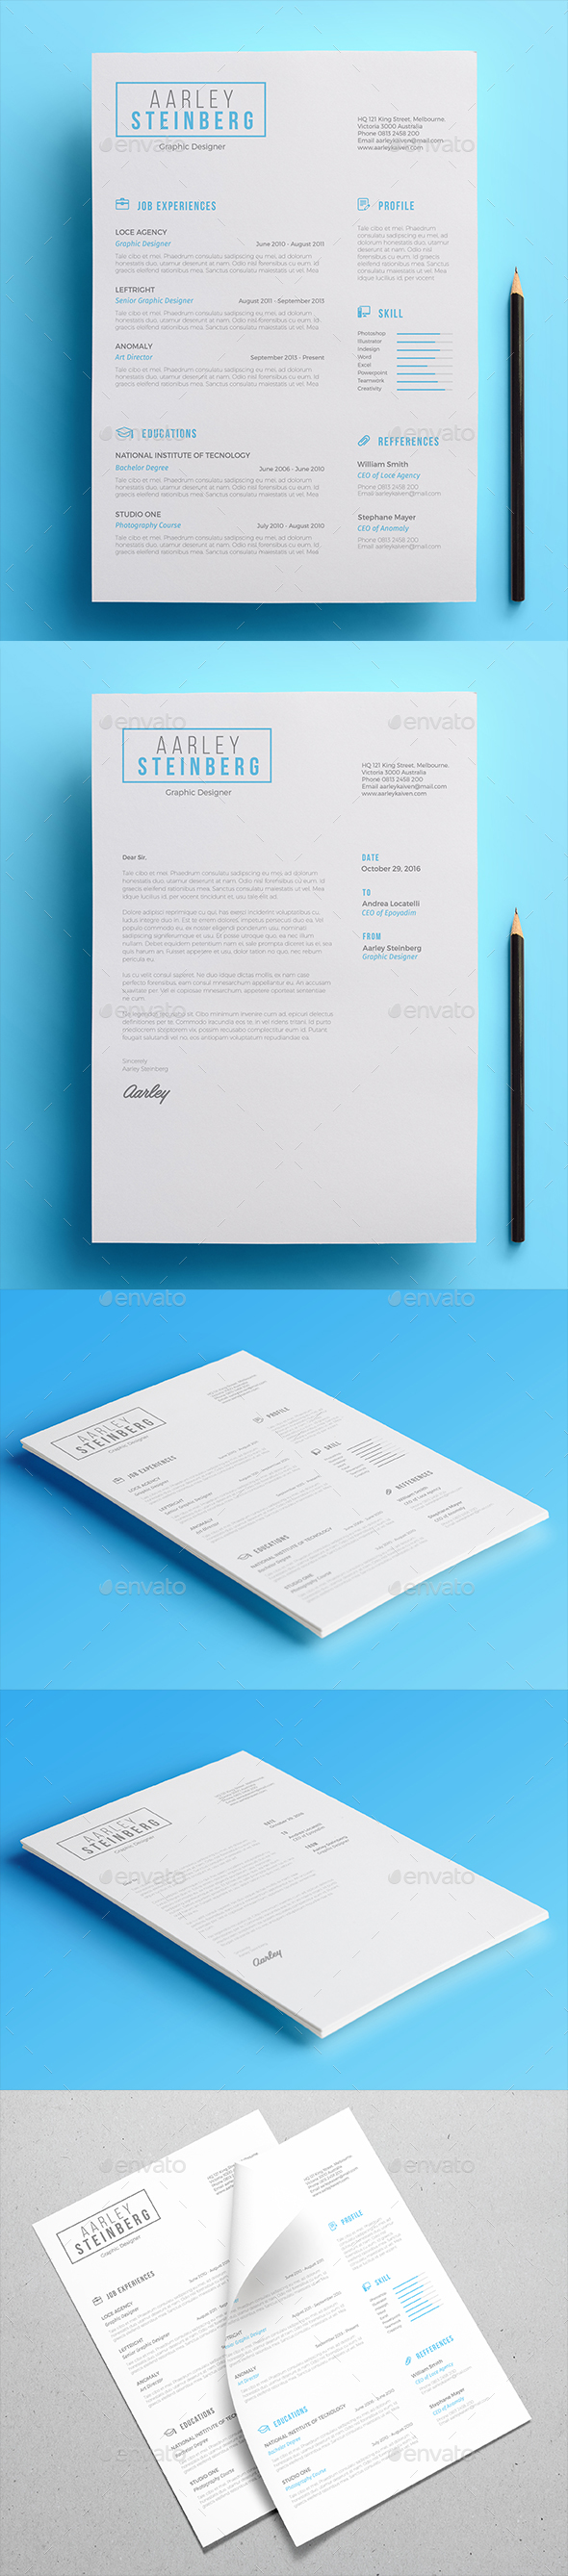 Minimal Resume 02 - Resumes Stationery